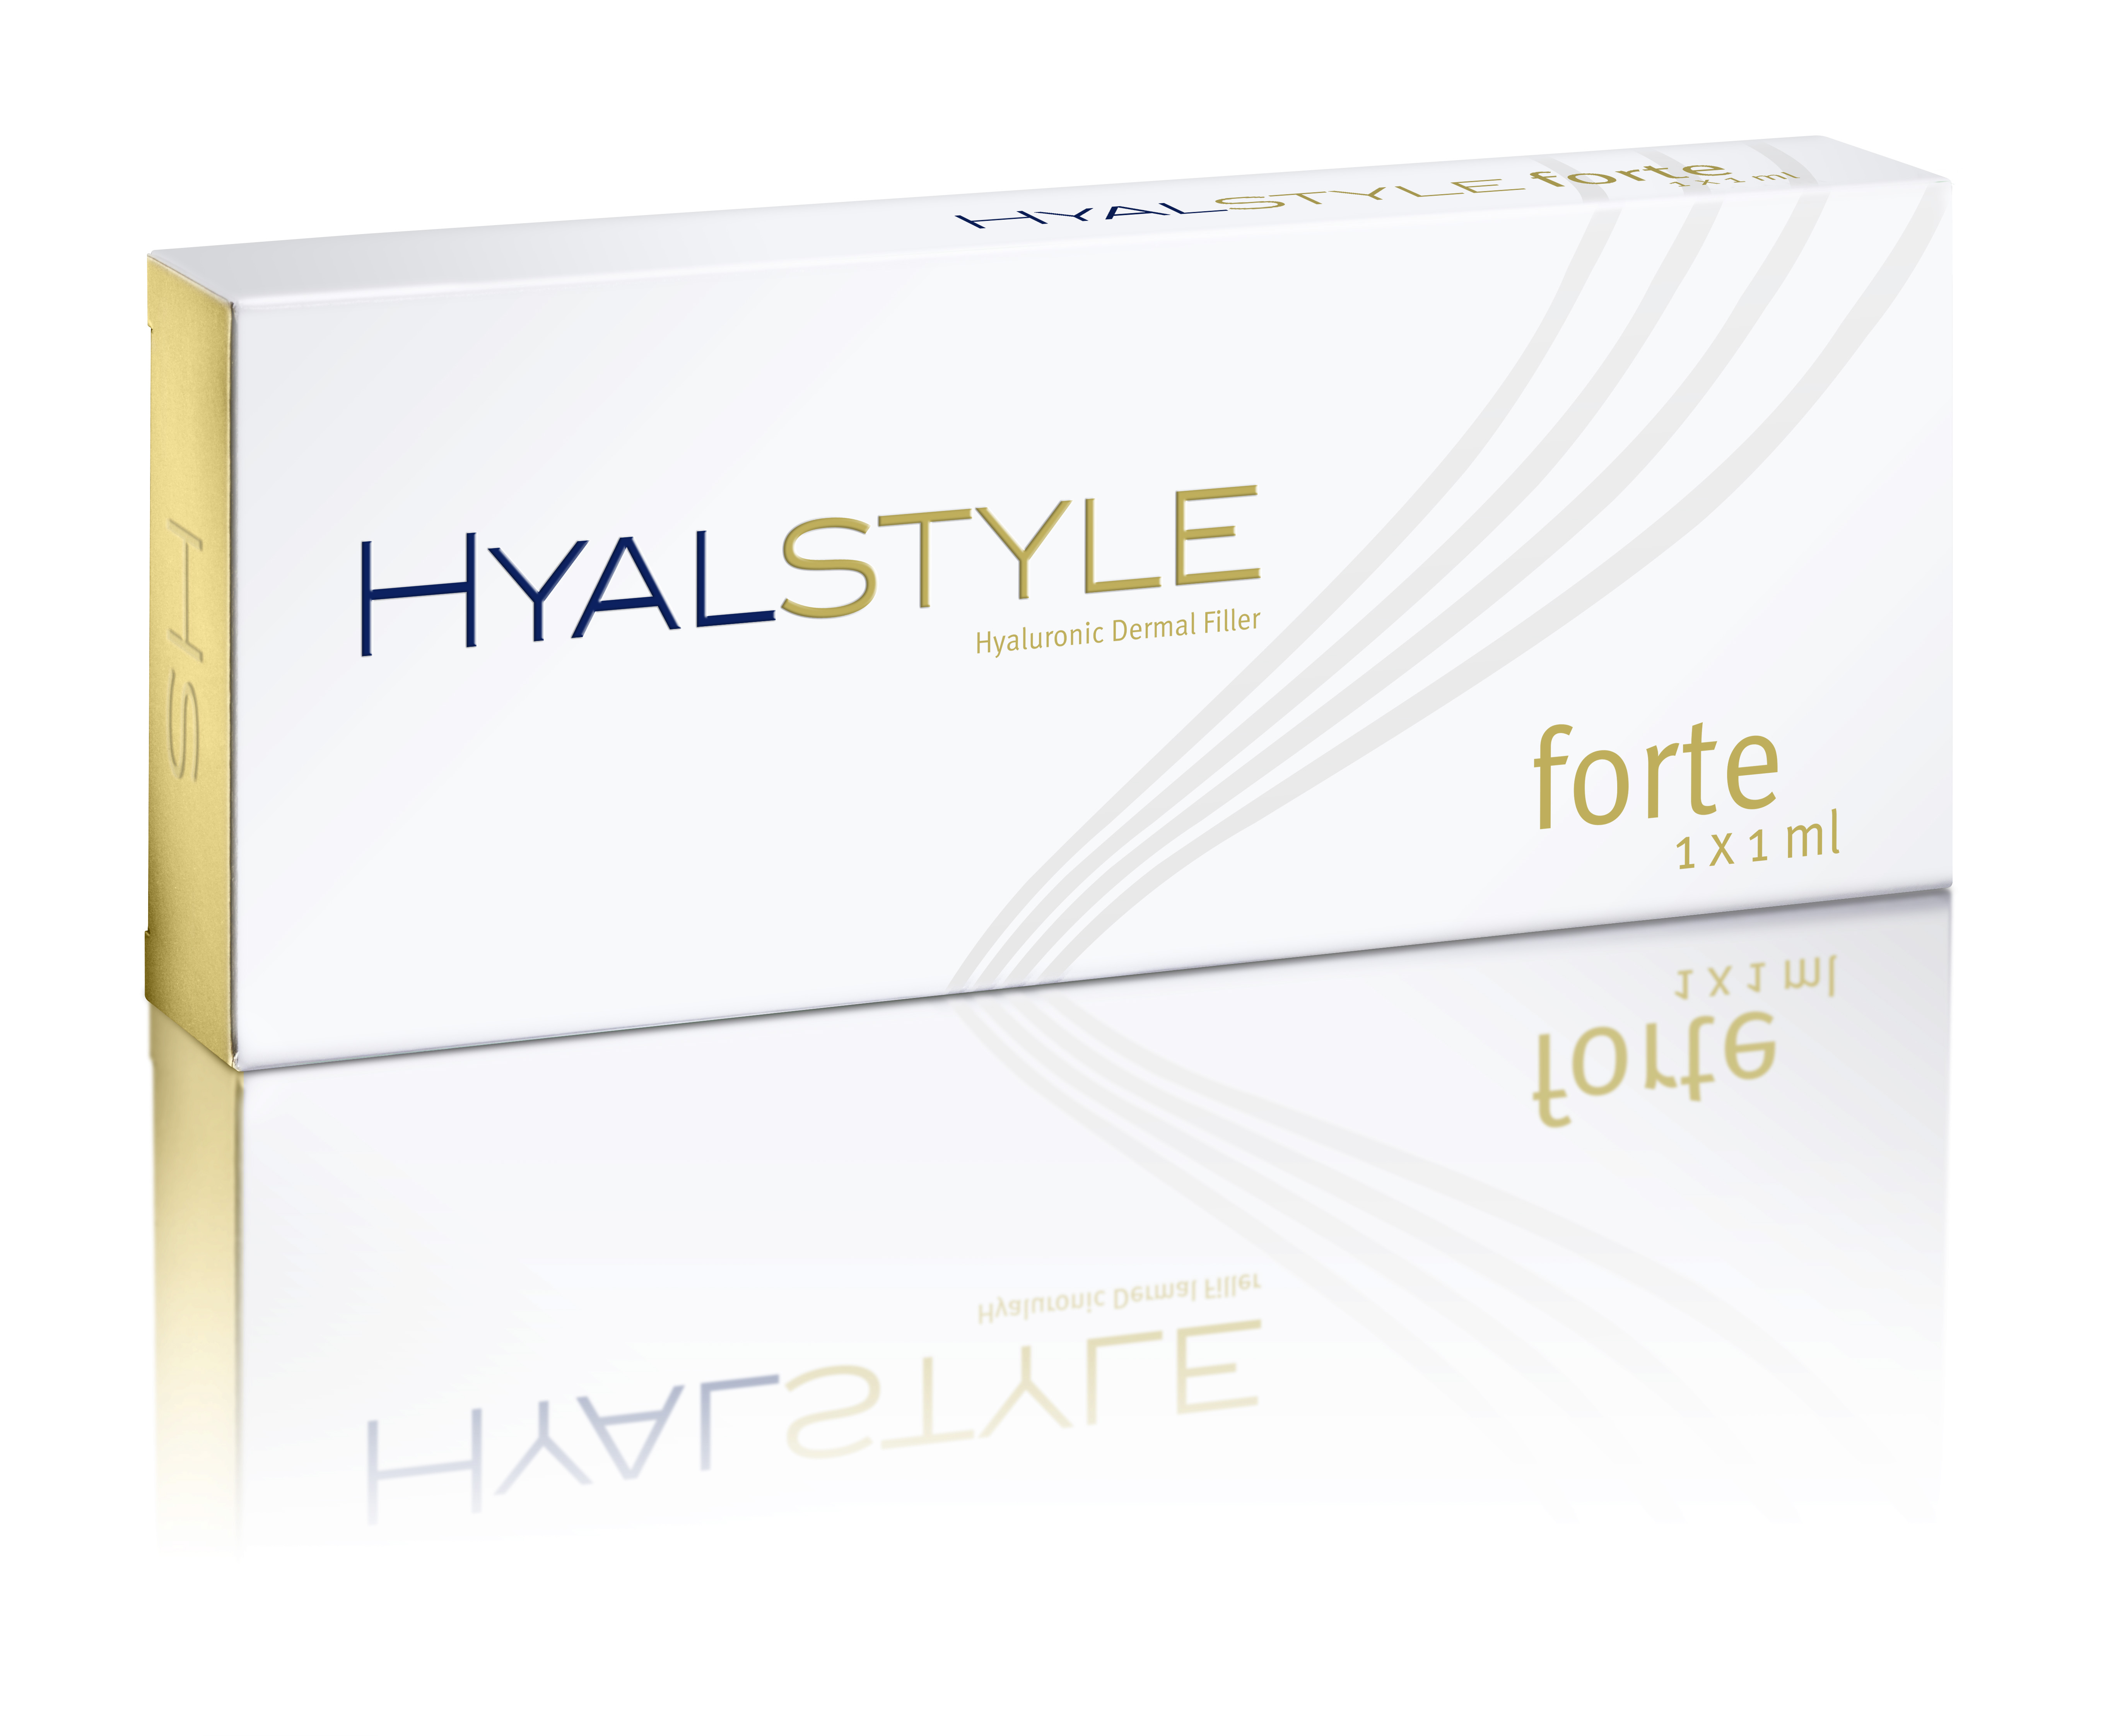 W&O HyalStyle Forte 1214